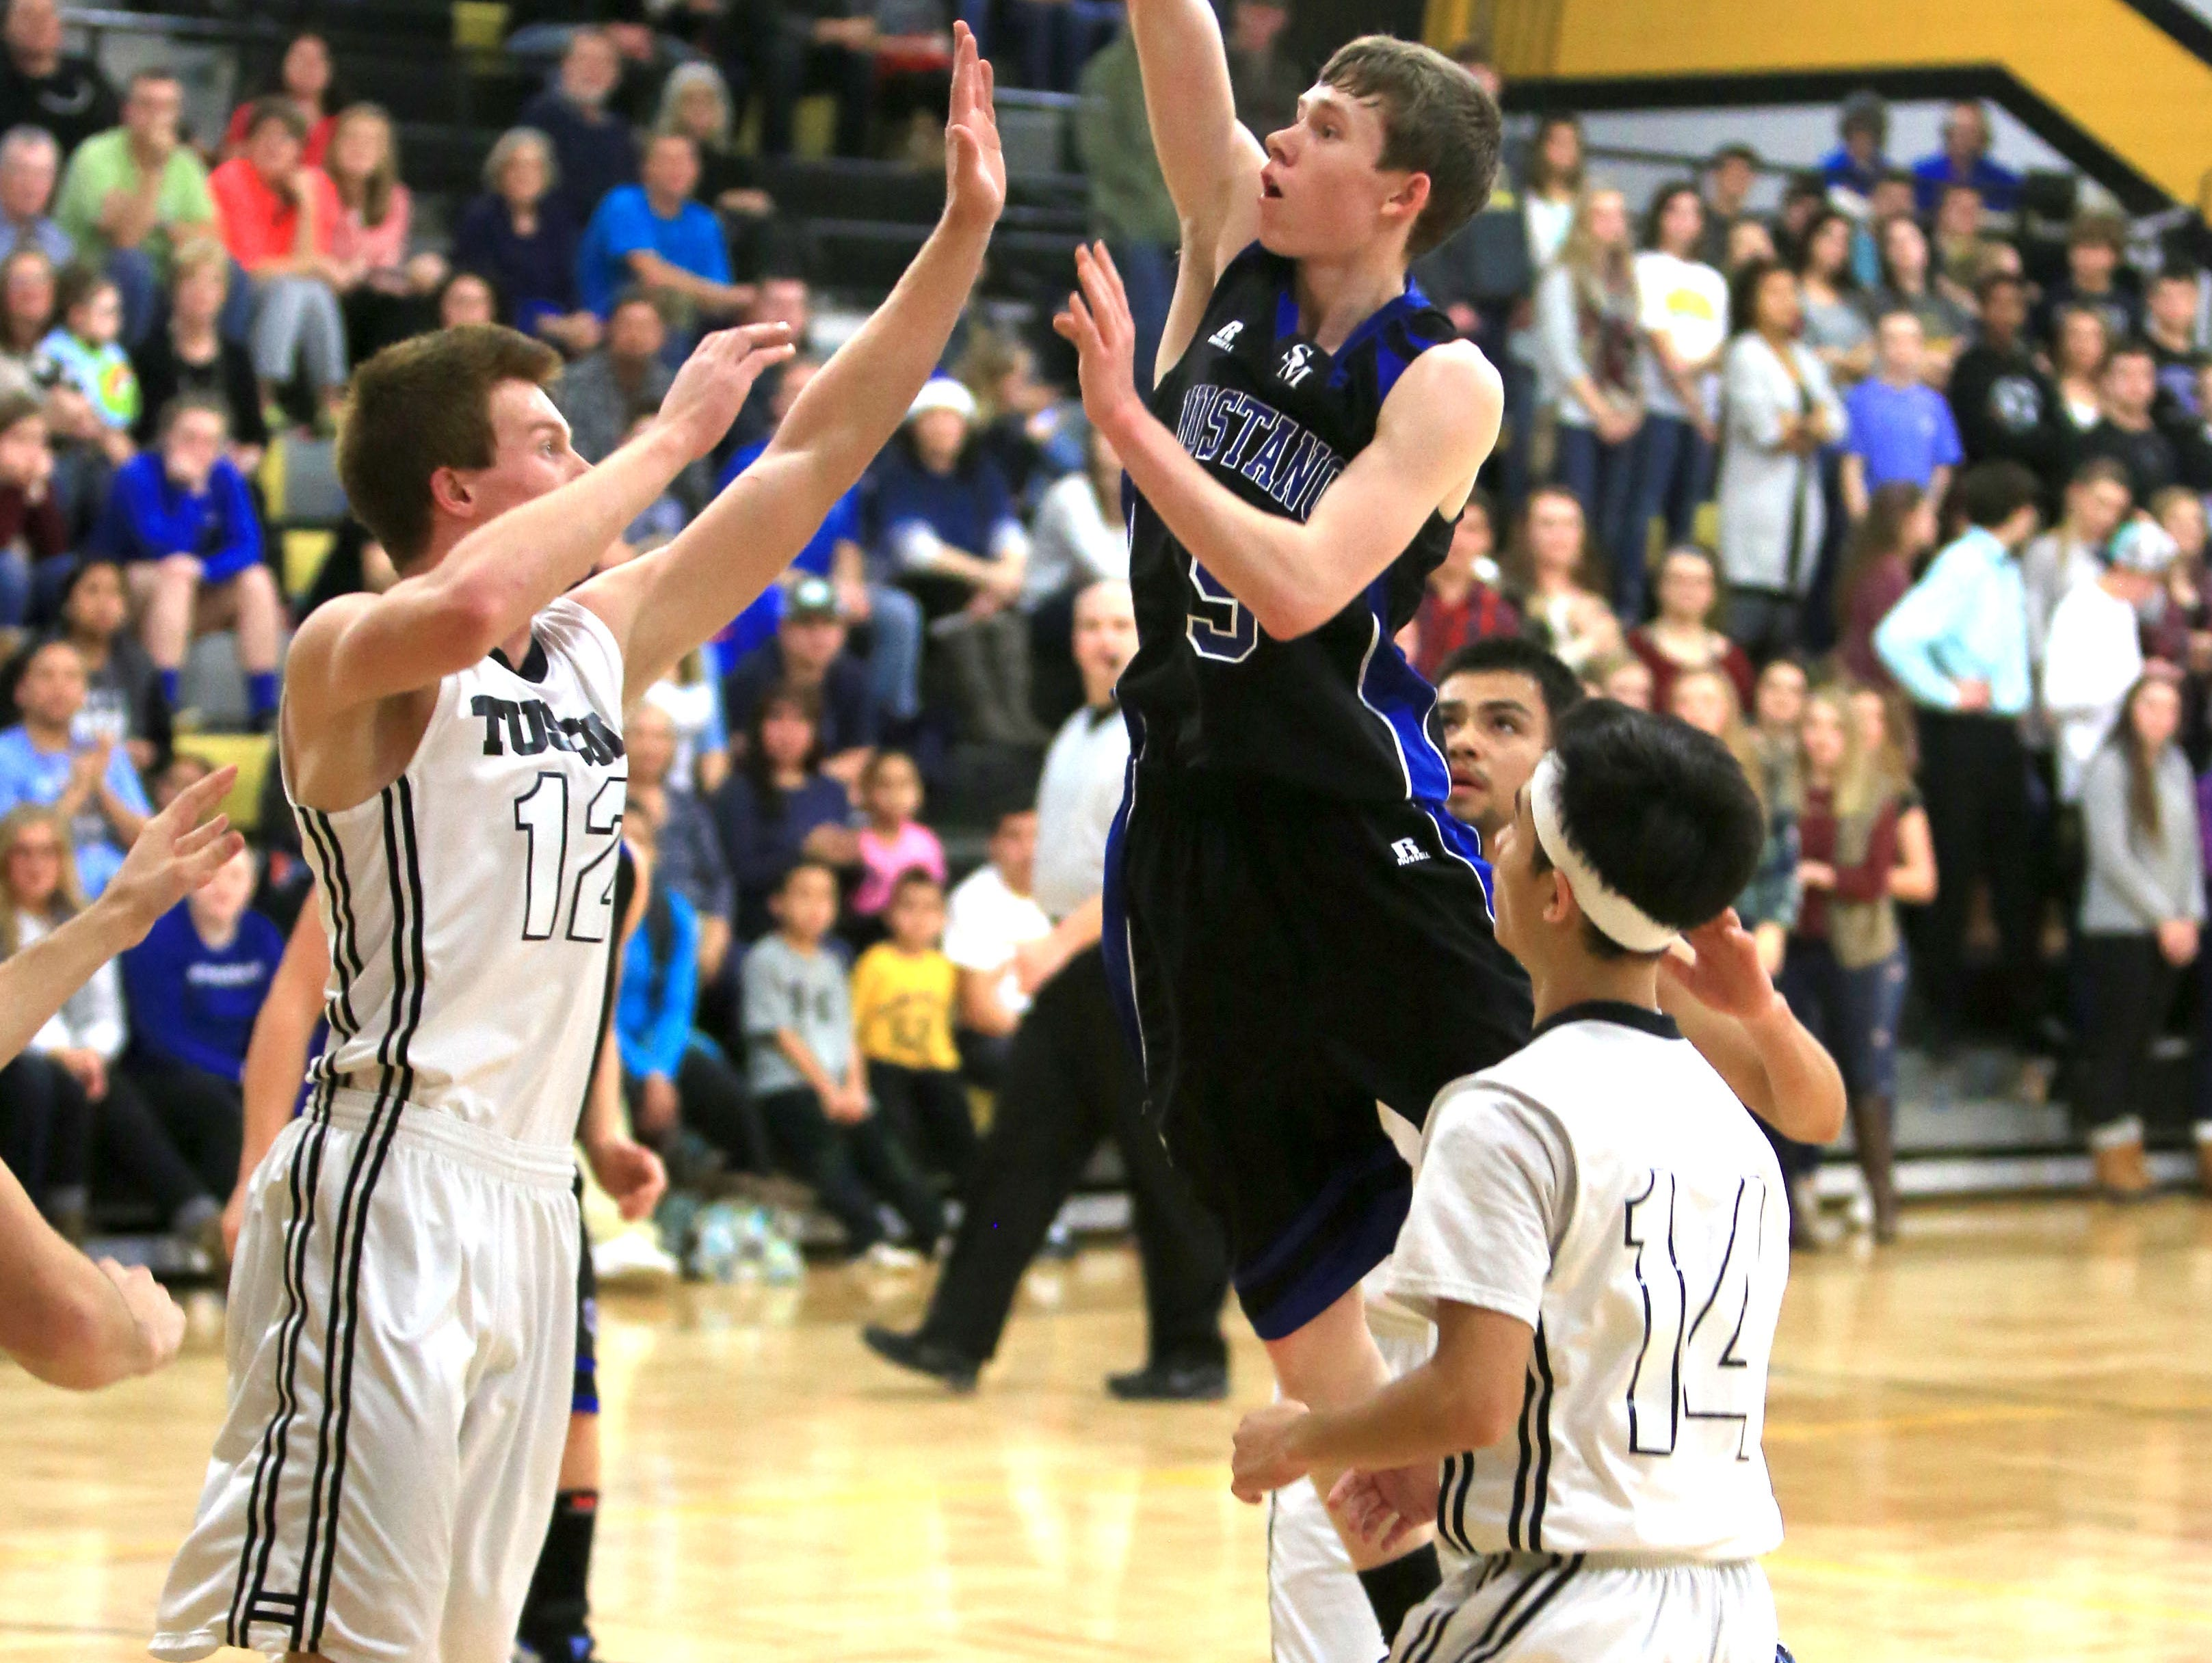 Tommy Brennan (5) scored a gam-high 28 points for the Smoky Mountain boys on Friday.